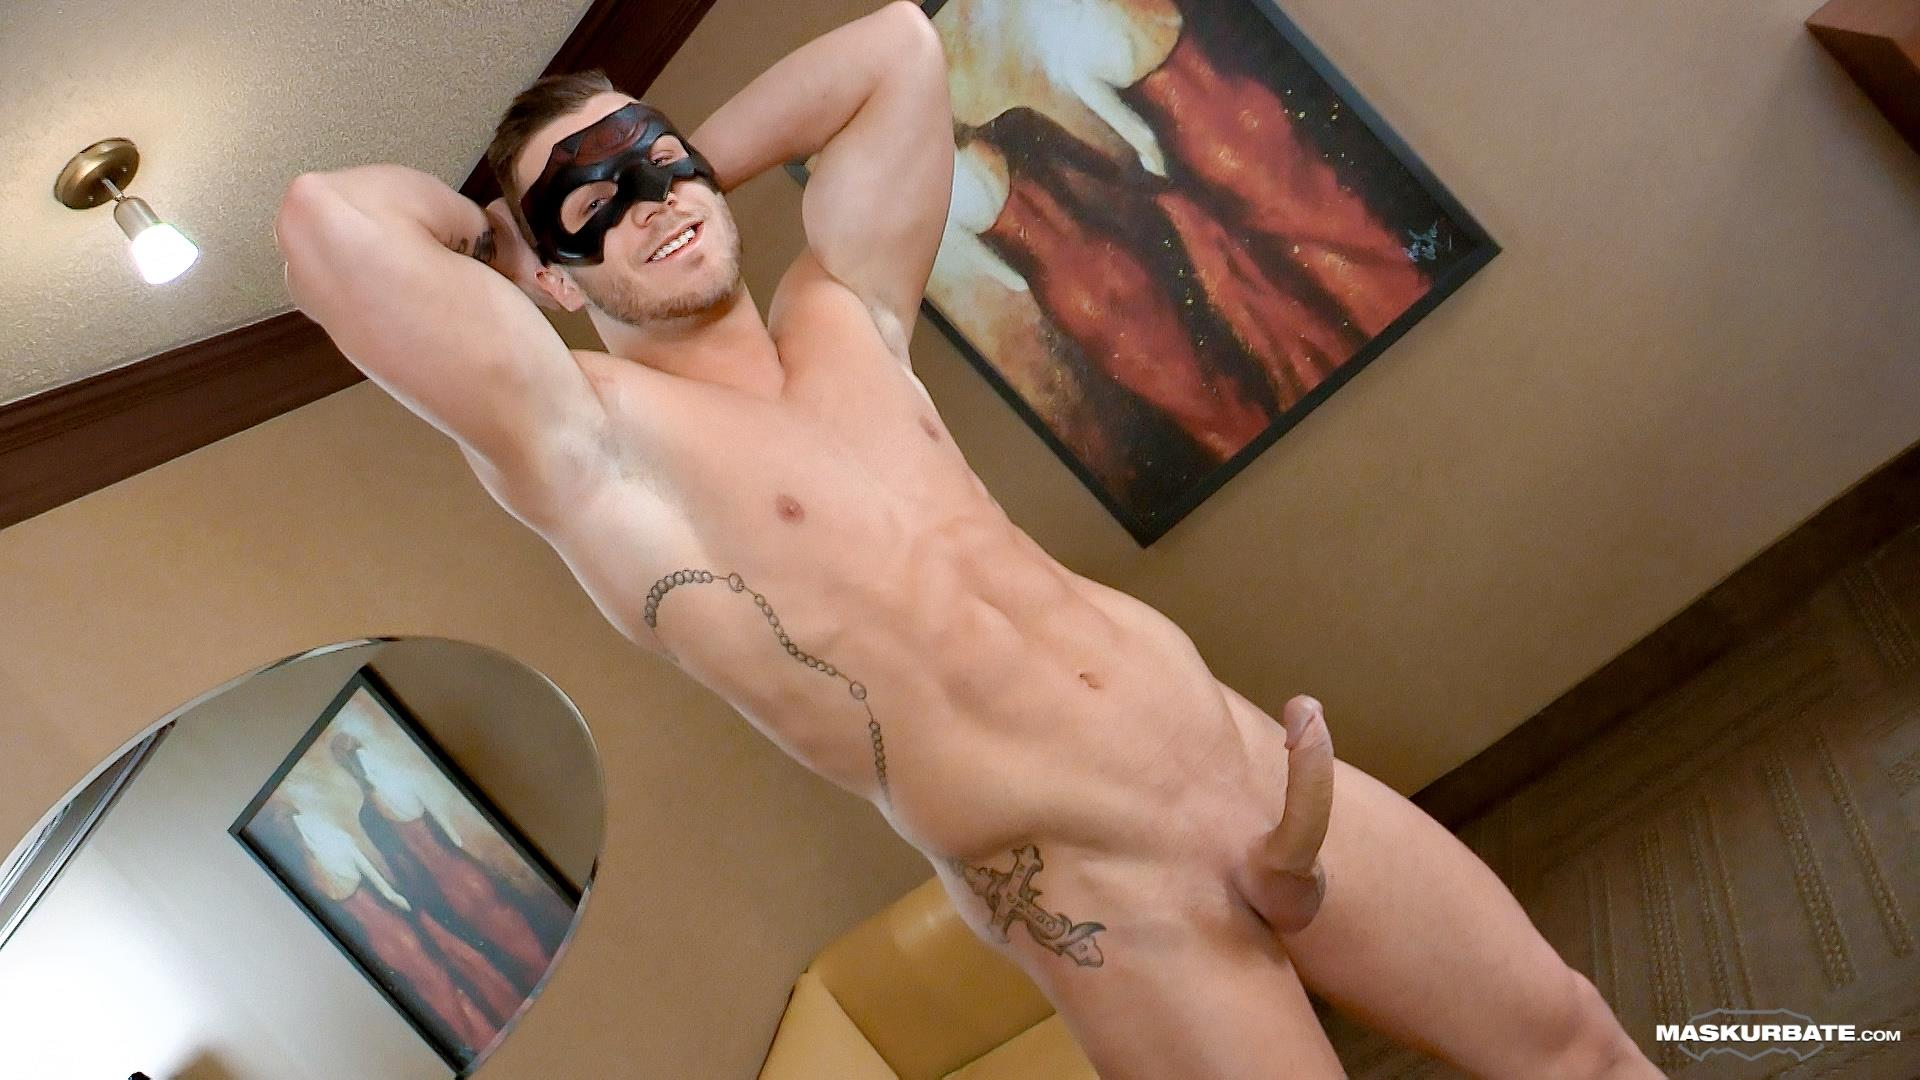 Maskurbate Mike Muscle Hunk With A Big Uncut Cock Jerking Off Amateur Gay Porn 08